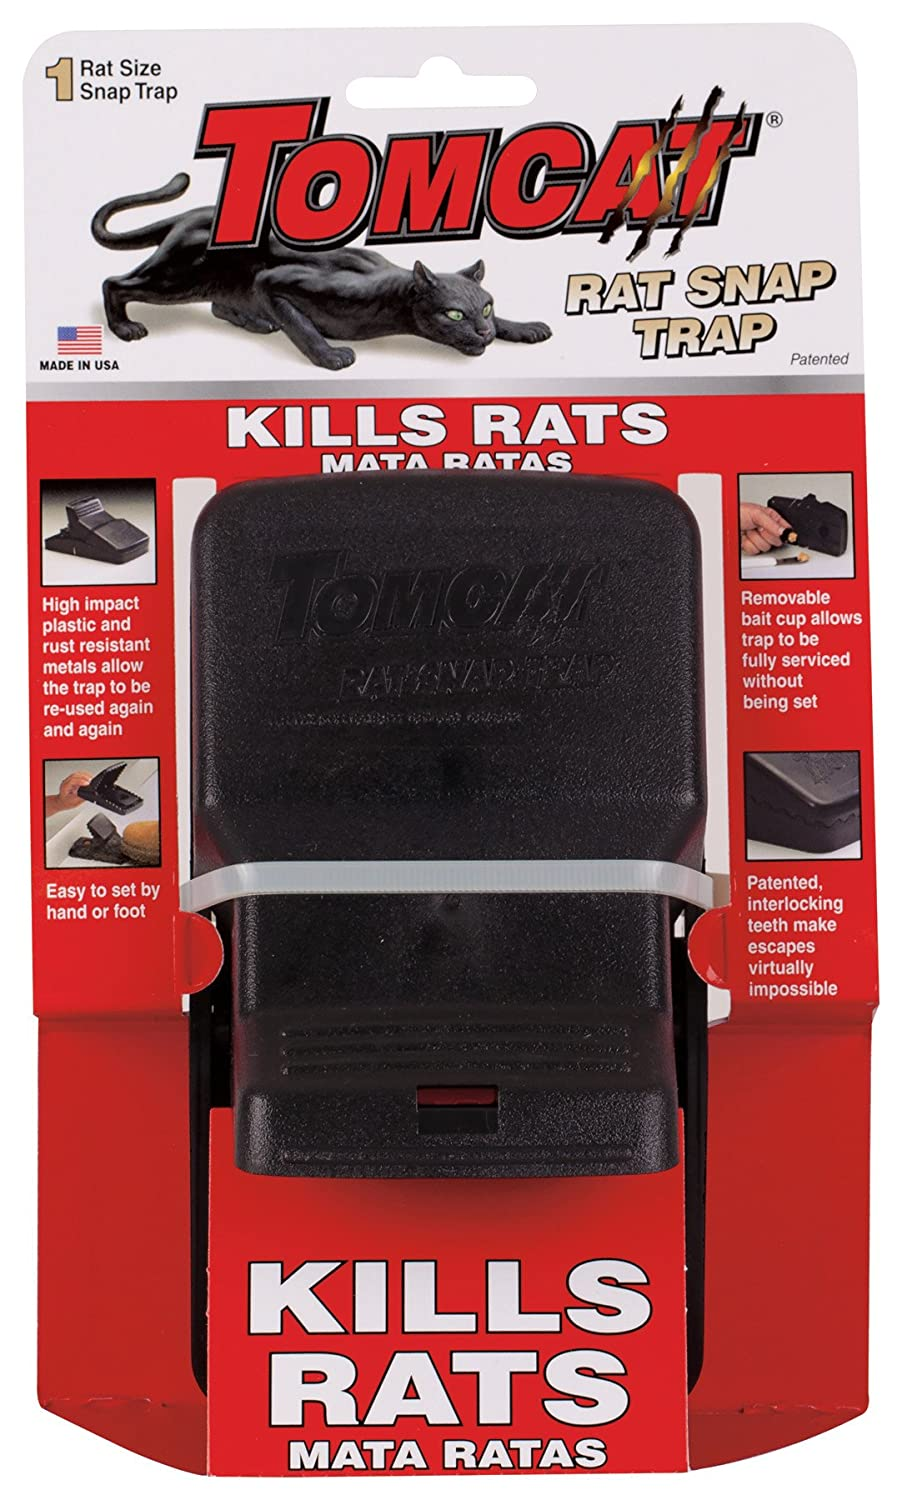 The Best Rat Trap Reviews & Buying Guide 2